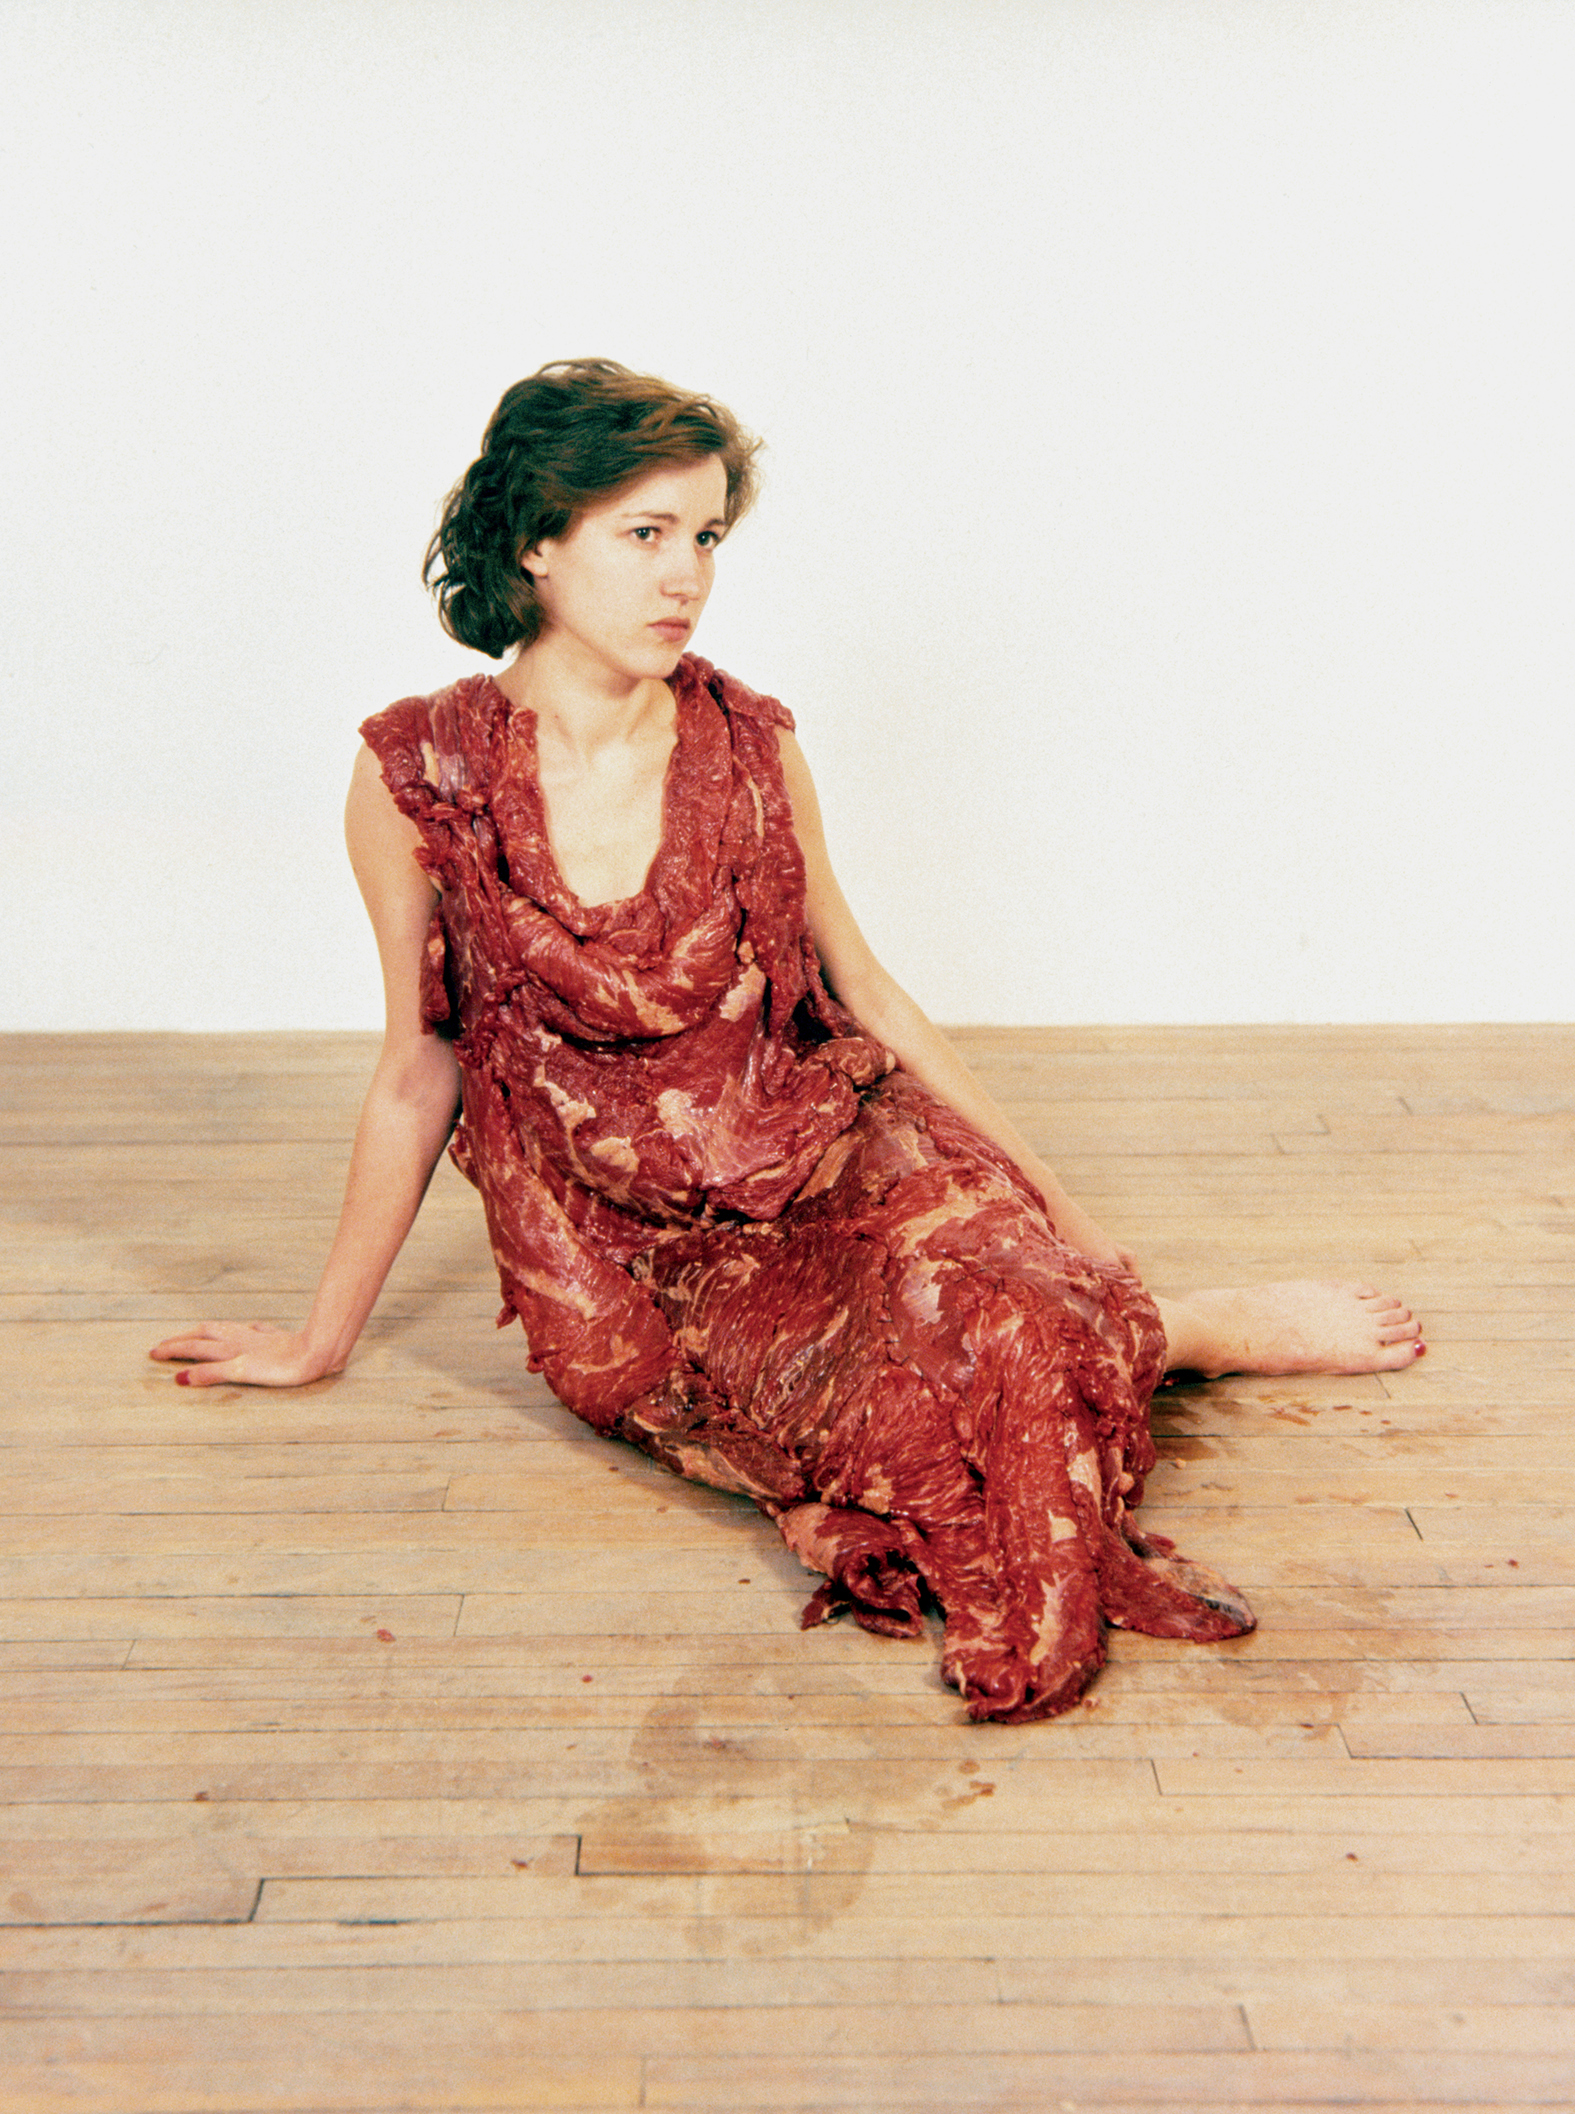 This photograph shows a dress made of slabs of raw beef stitched together hangs on a woman.